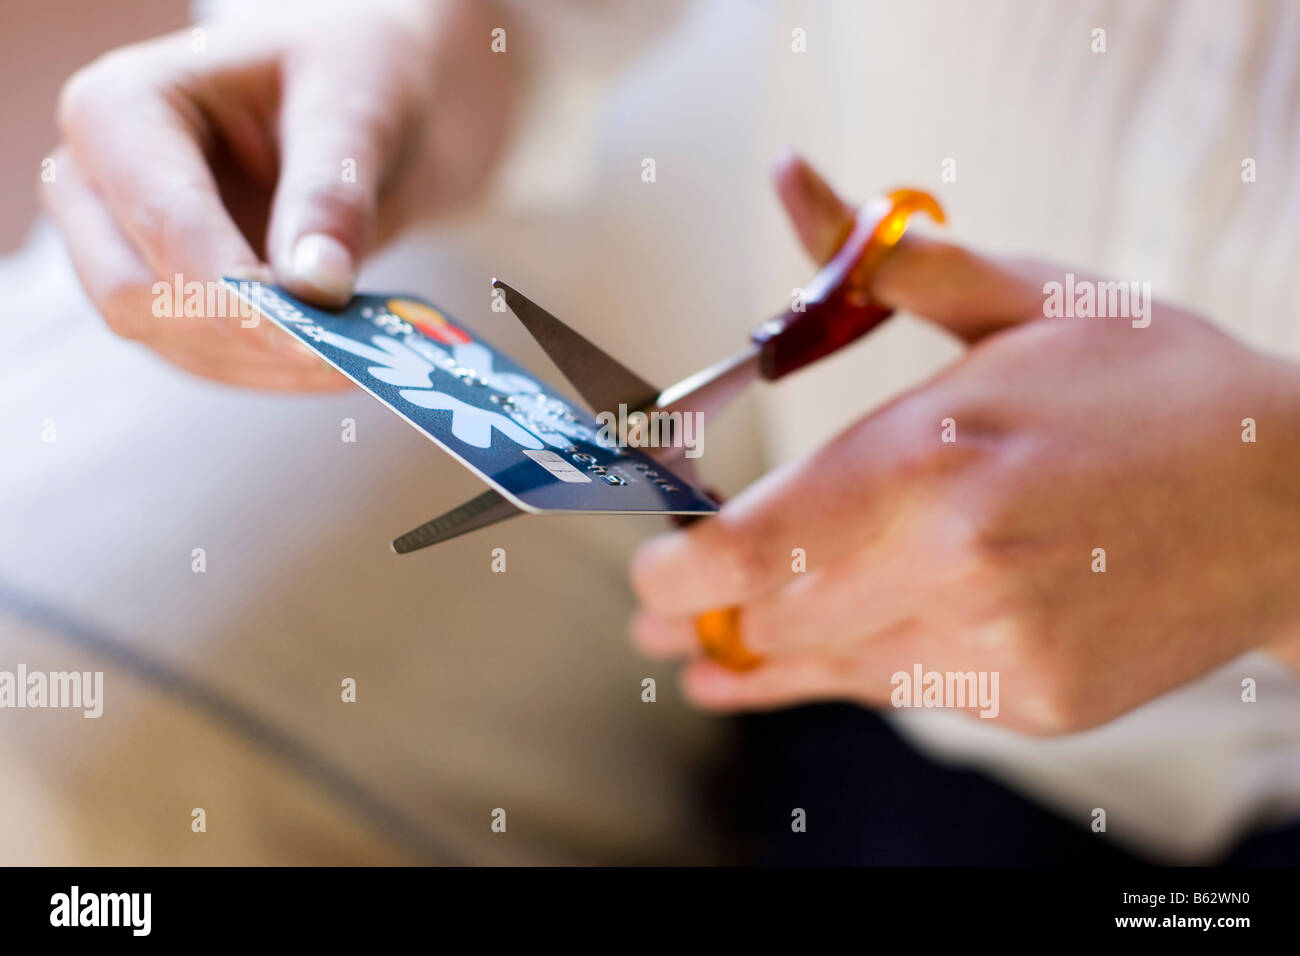 Woman cutting up credit card - Stock Image